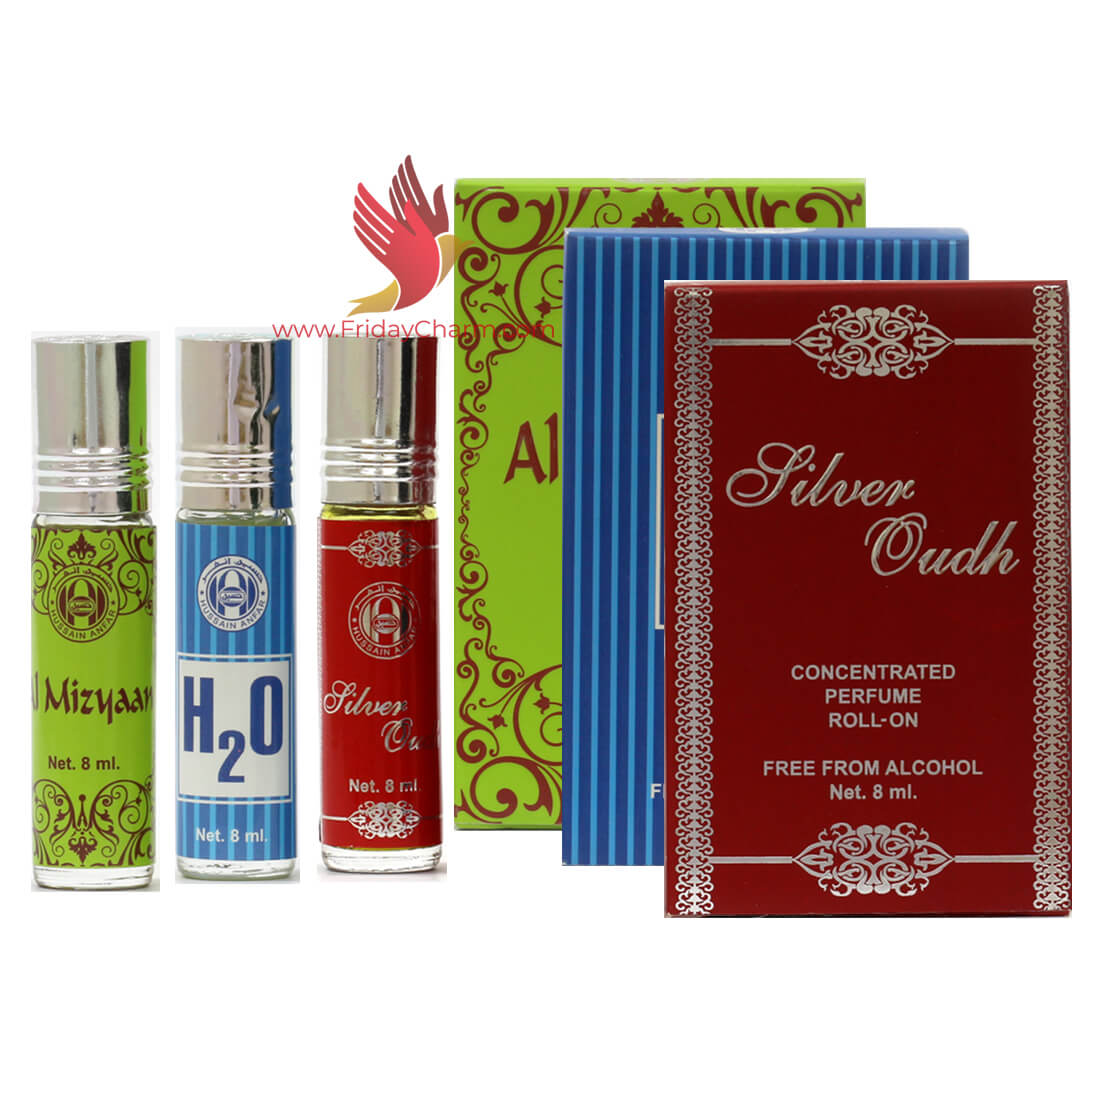 Anfar Silver Oudh, H2O & Al Mizyaan  8ml Roll on Attar Pack Of 3